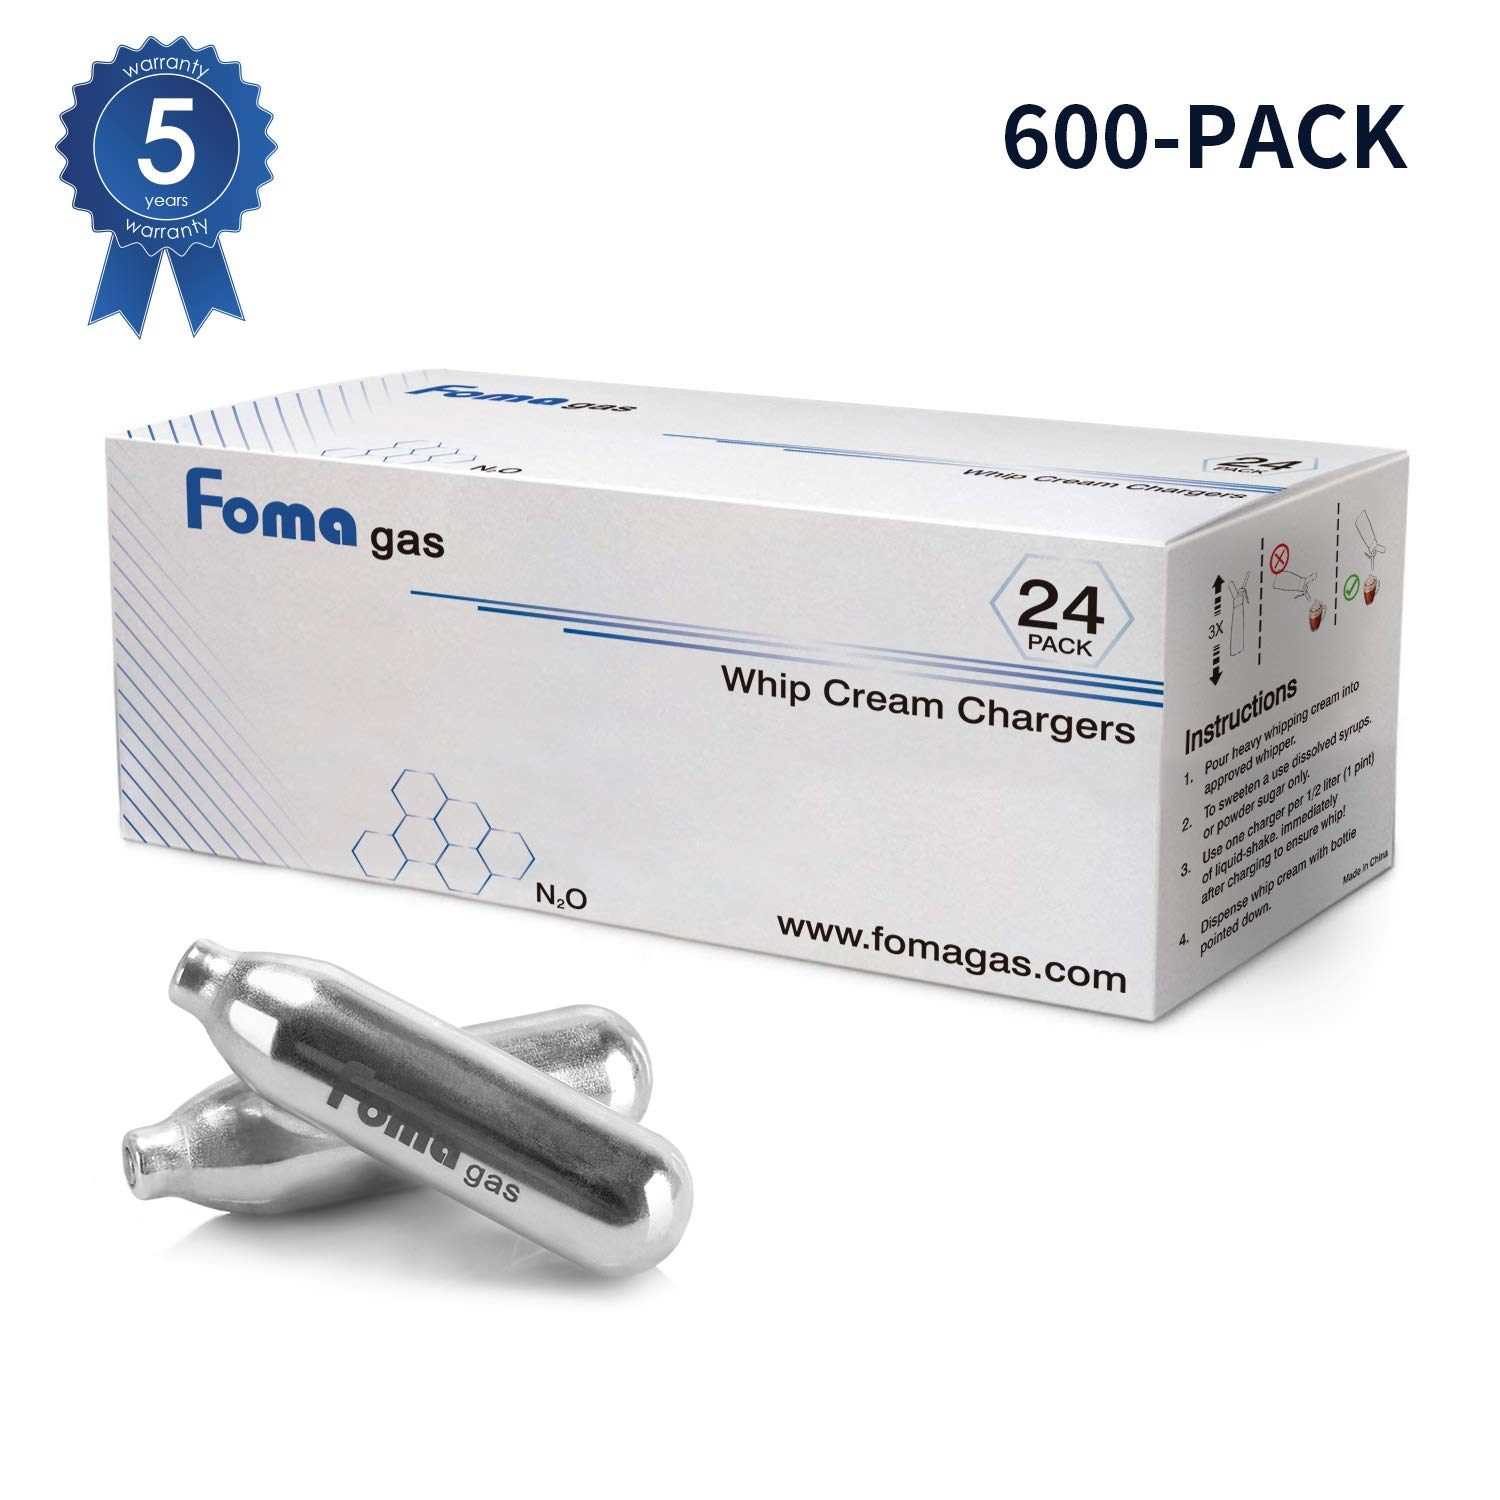 Foma Gas Whipped Cream Chargers Nitrous Oxide Charger N2O Cartridge (600 Pack)